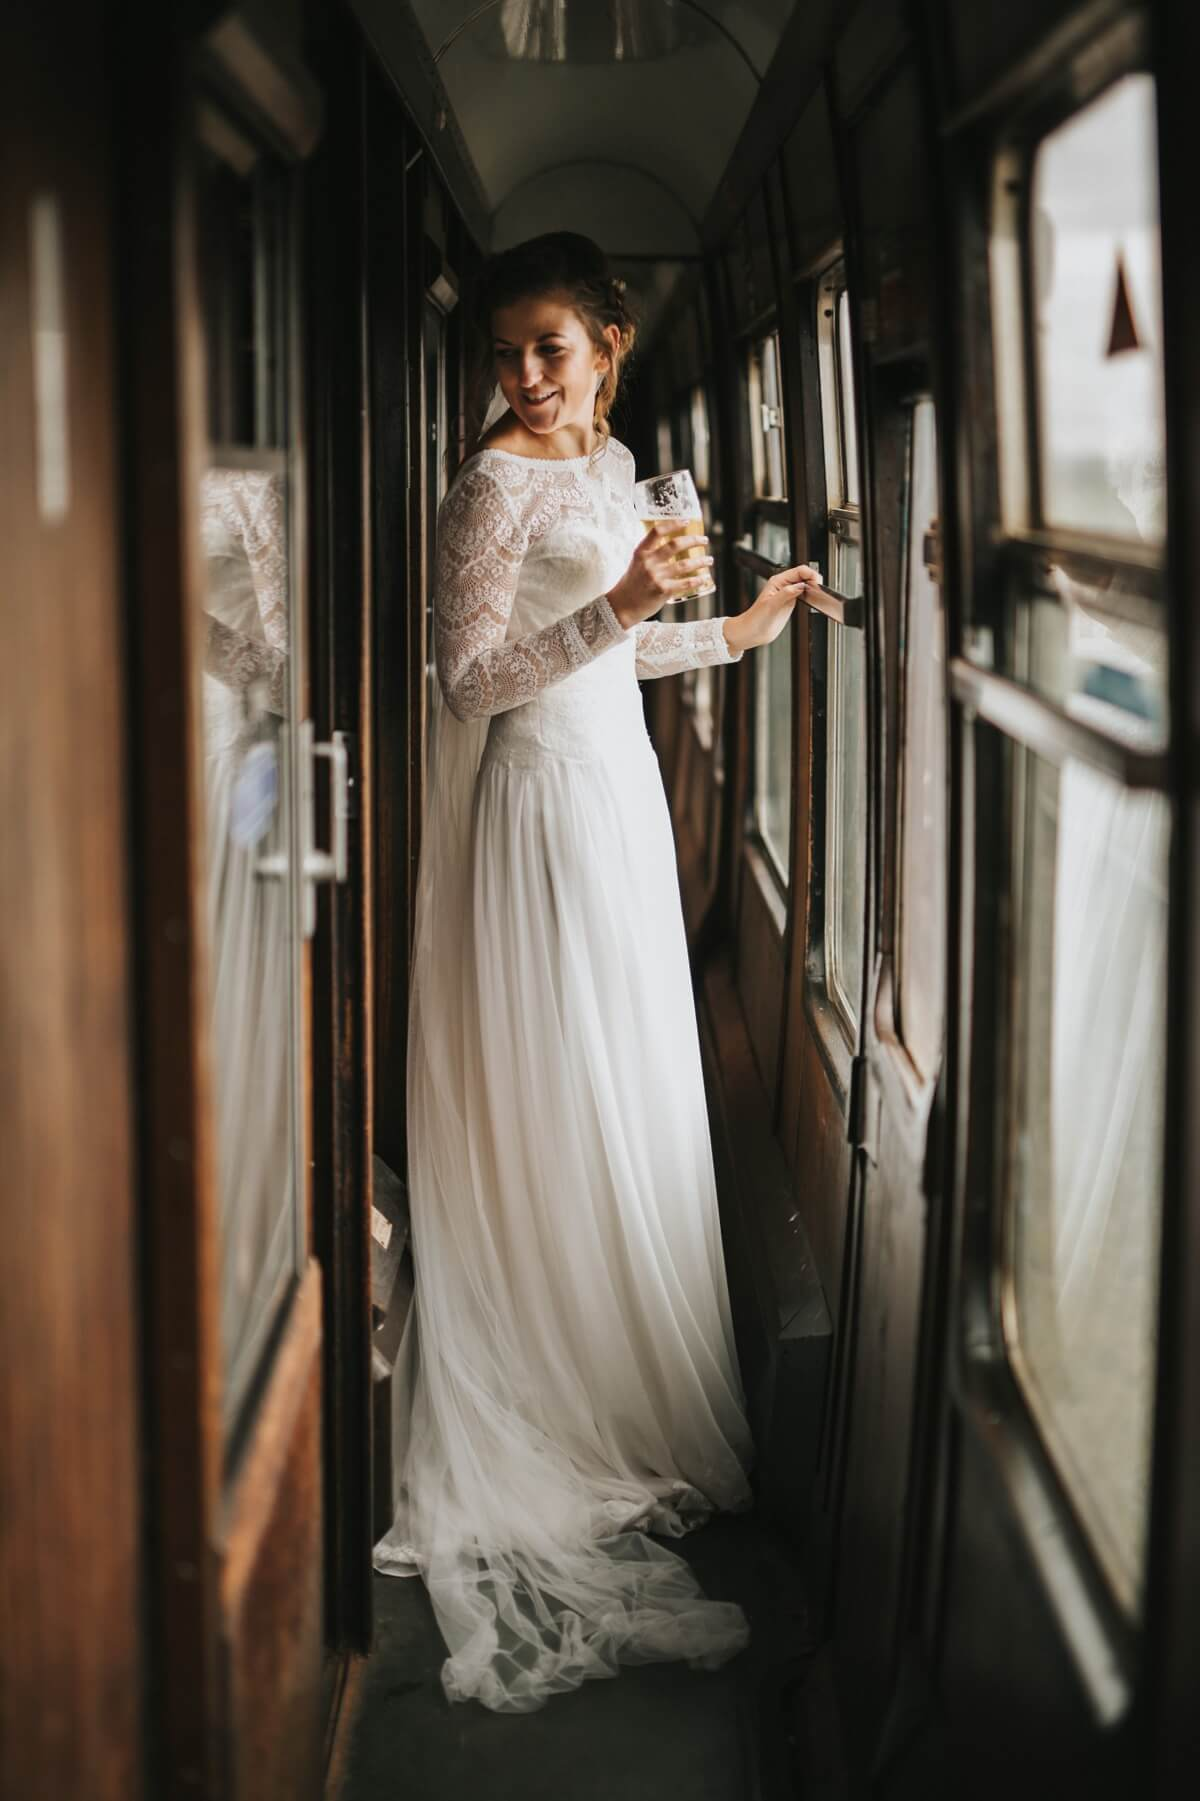 Buckinghamshire railway centre wedding photographer Aylesbury wedding photographer